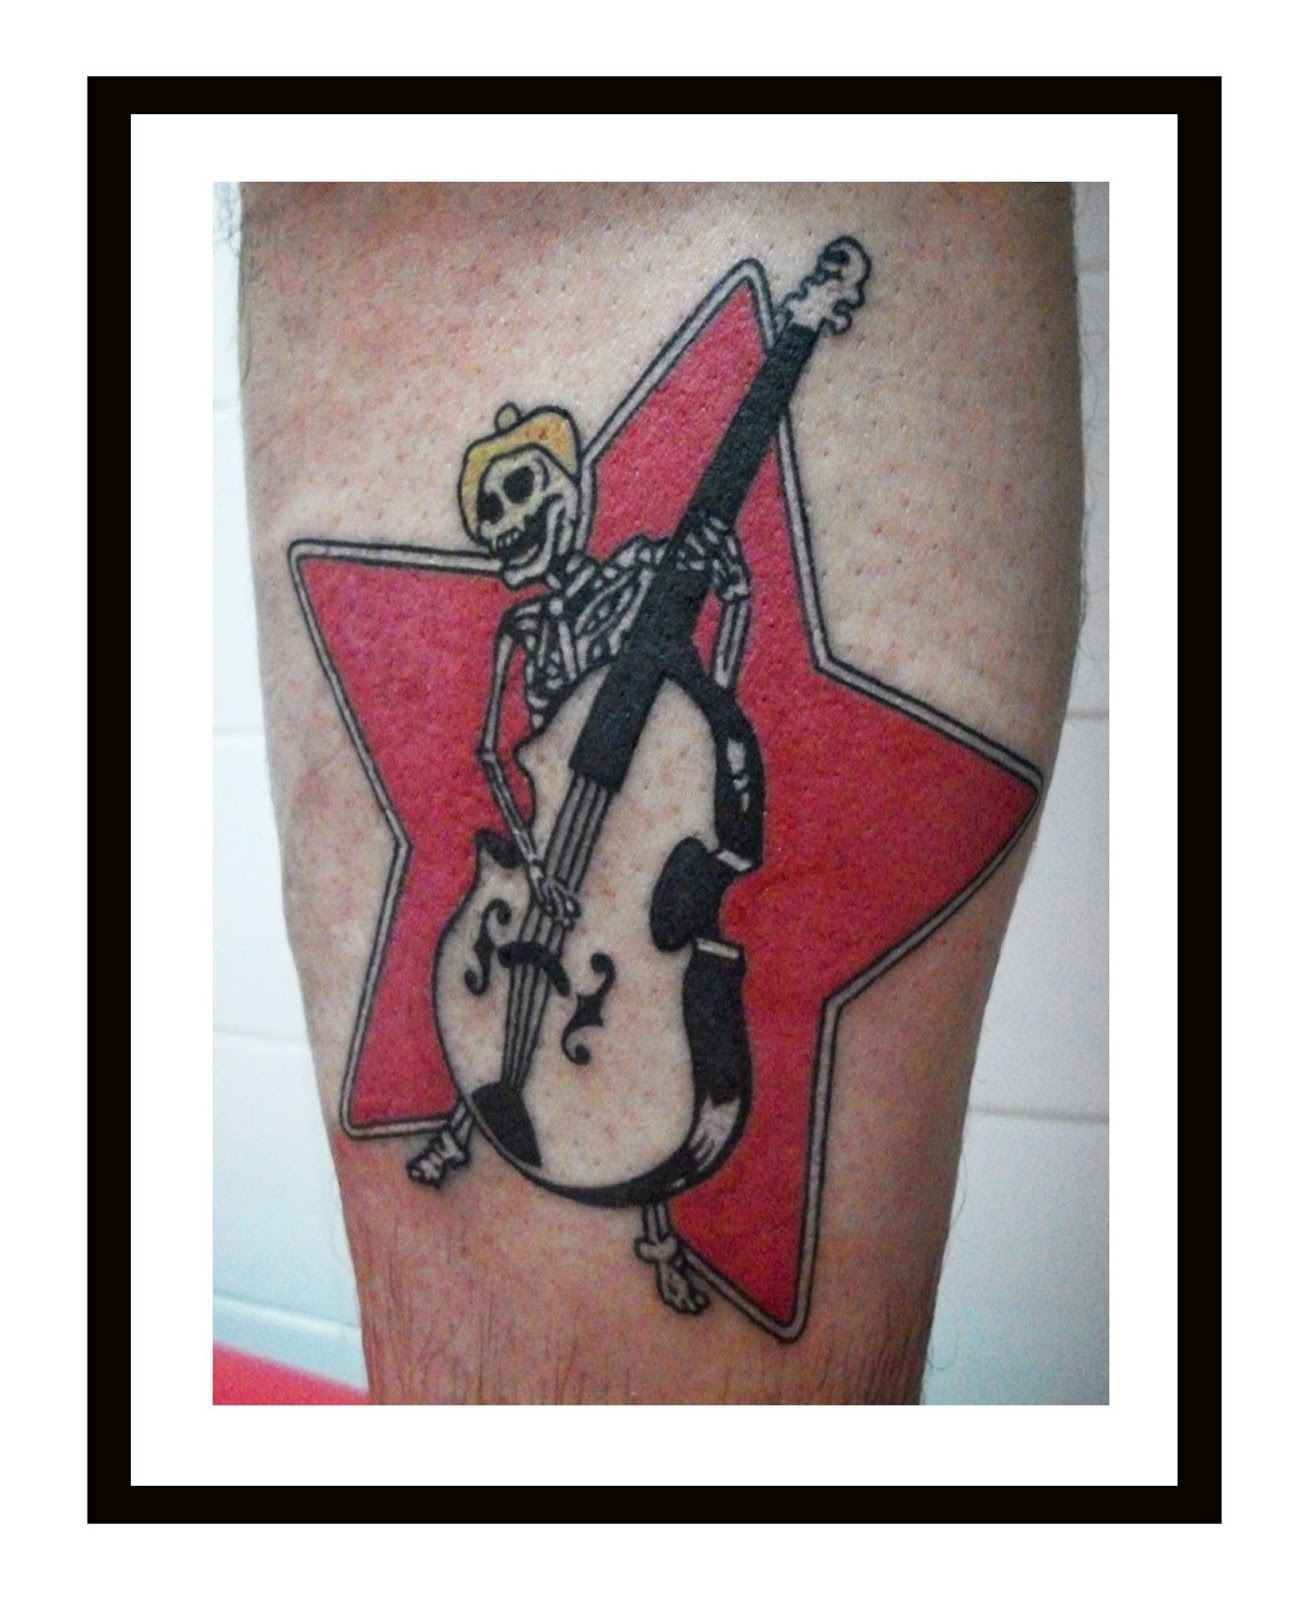 SKELETON- BASS-PLAYER-TATTOO